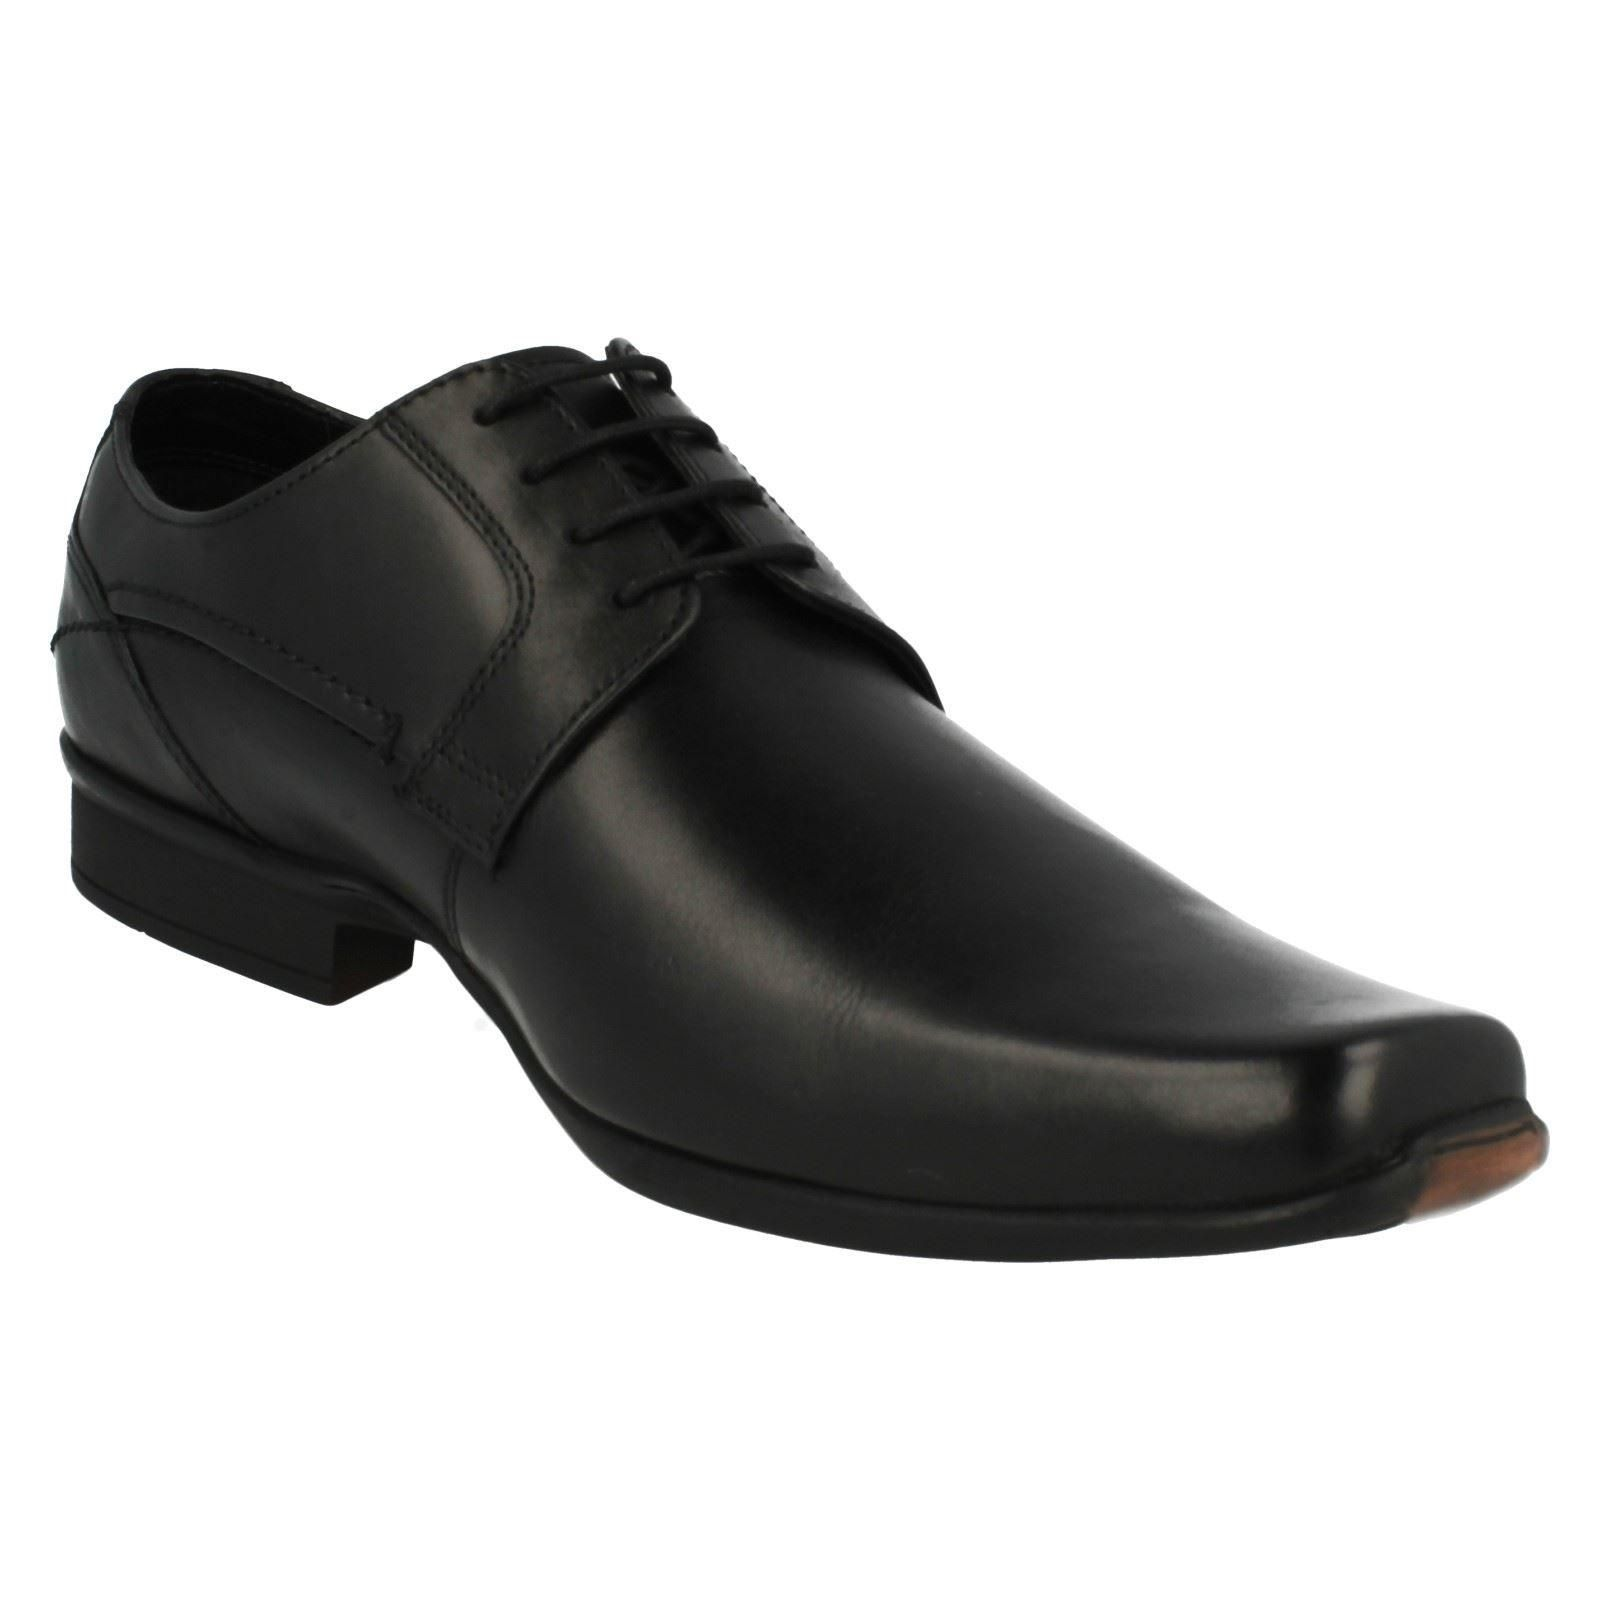 Mens-Clarks-Formal-Lace-Up-Shoes-Ascar-Walk thumbnail 9